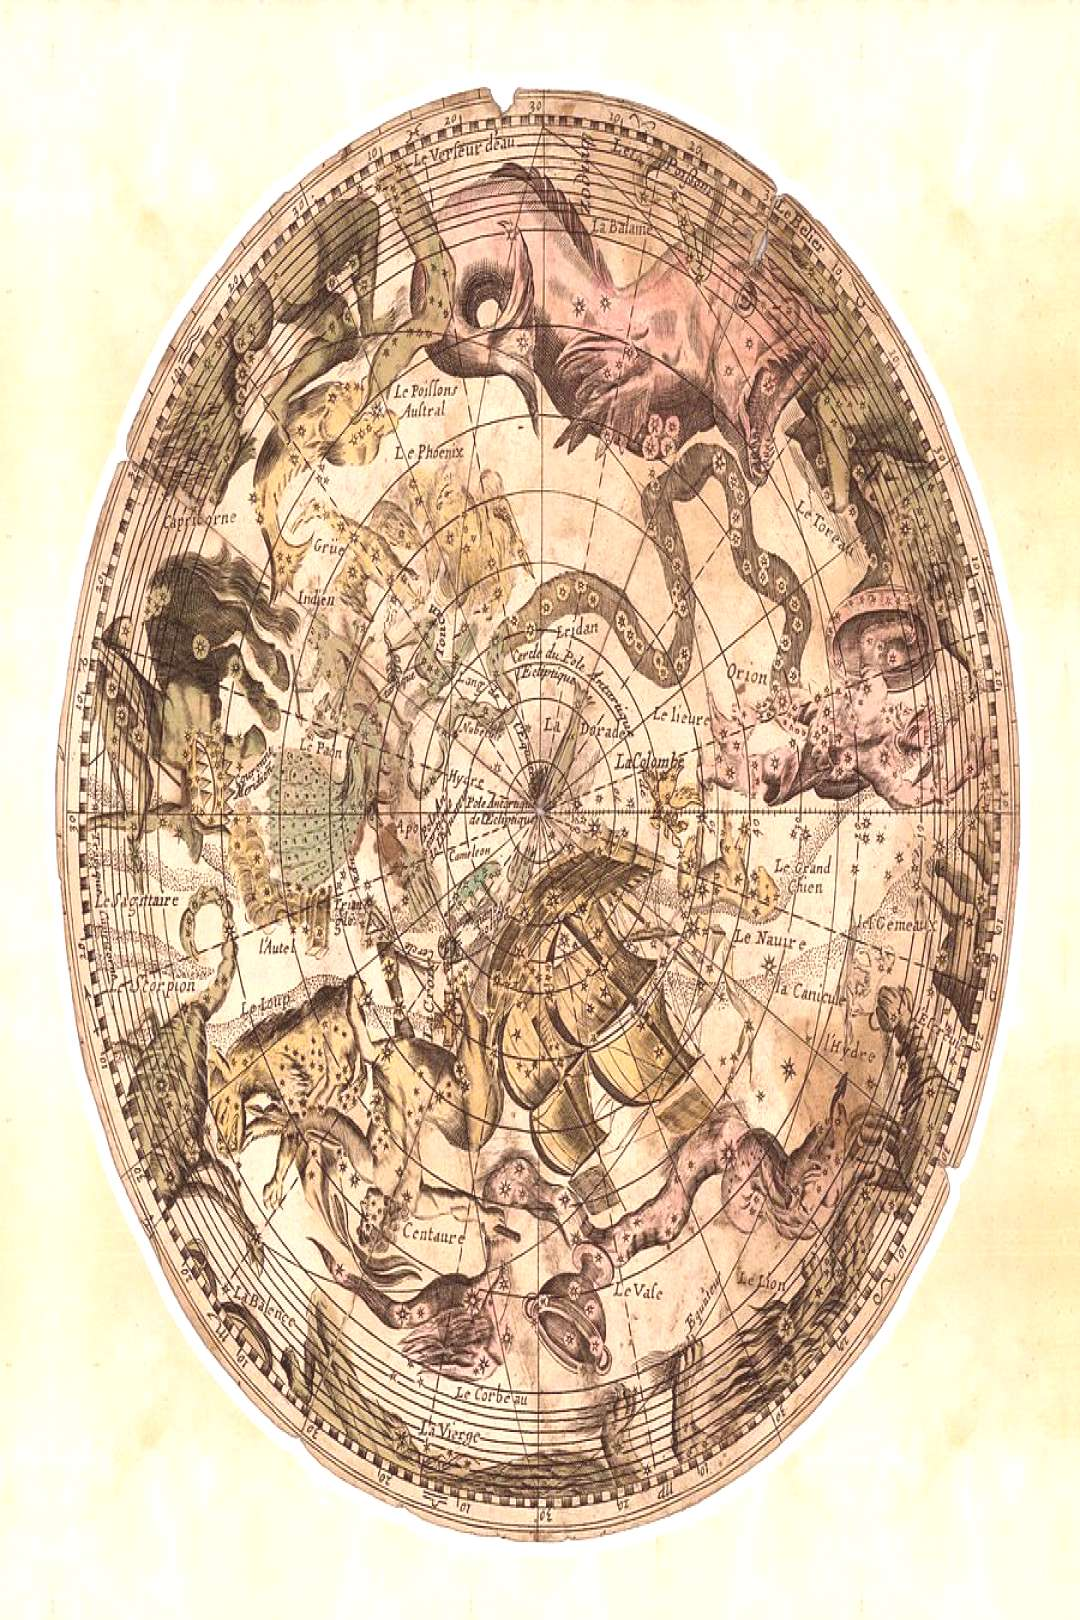 Drawing - Illustrated Map Of The Constellations - Celestial Map - Celestial Atlas - Antique Histori